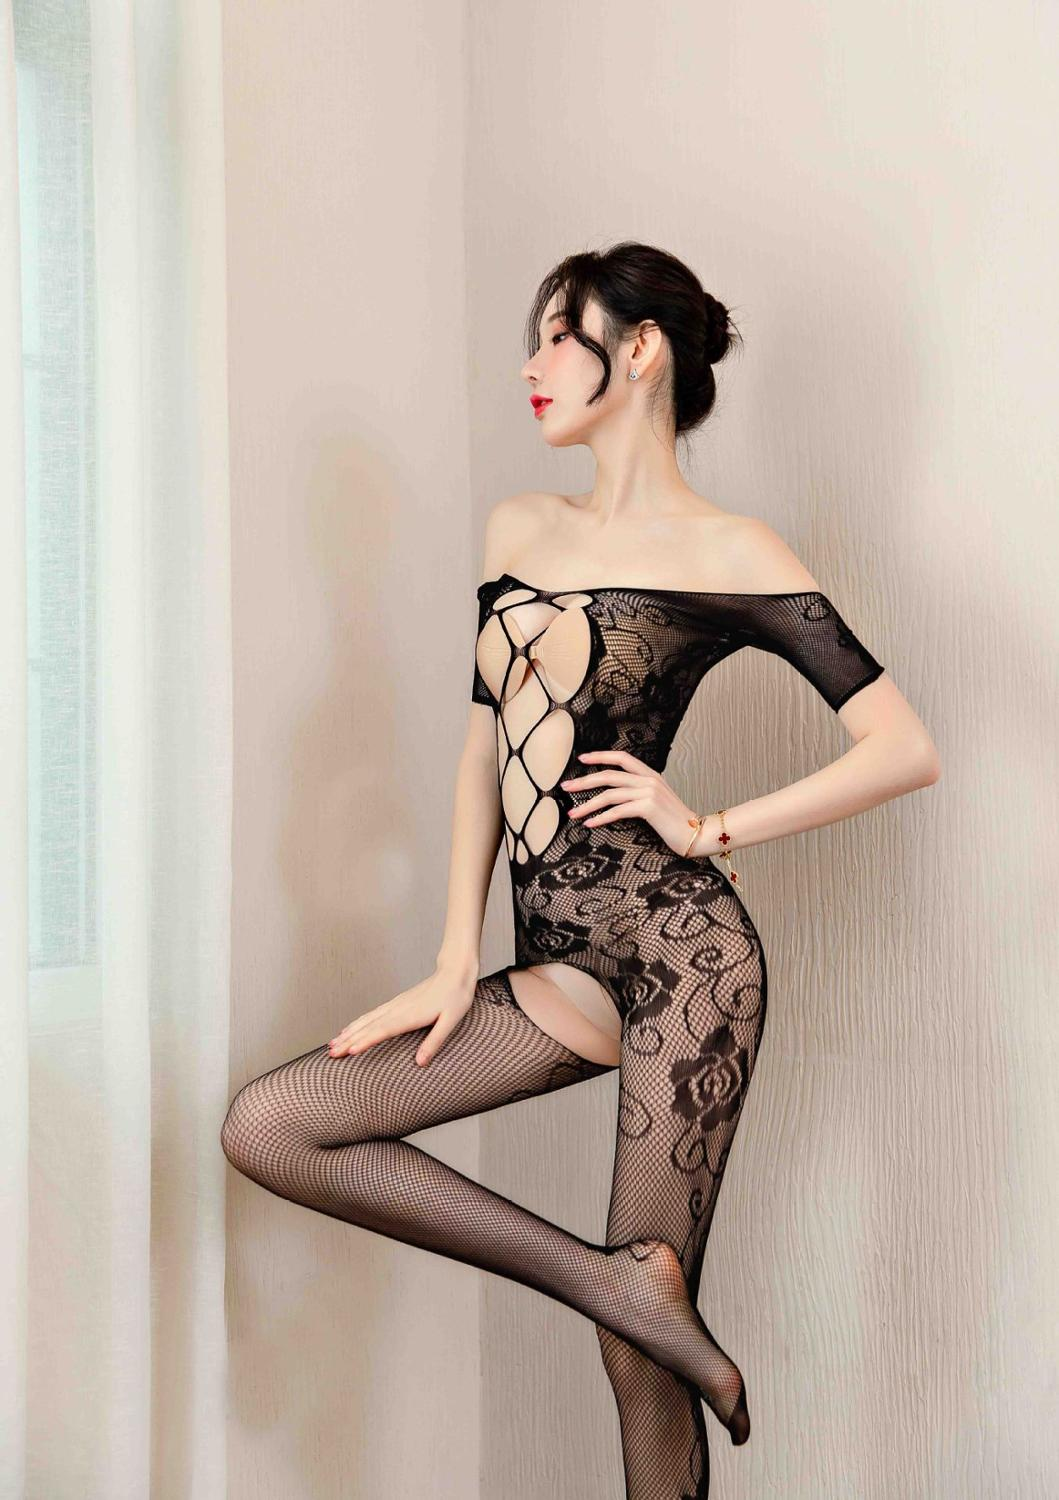 Plus Size Women Lingerie Sexy Hot Erotic Fishnet Babydoll lenceria Sexy Body Stocking Costumes Negligees